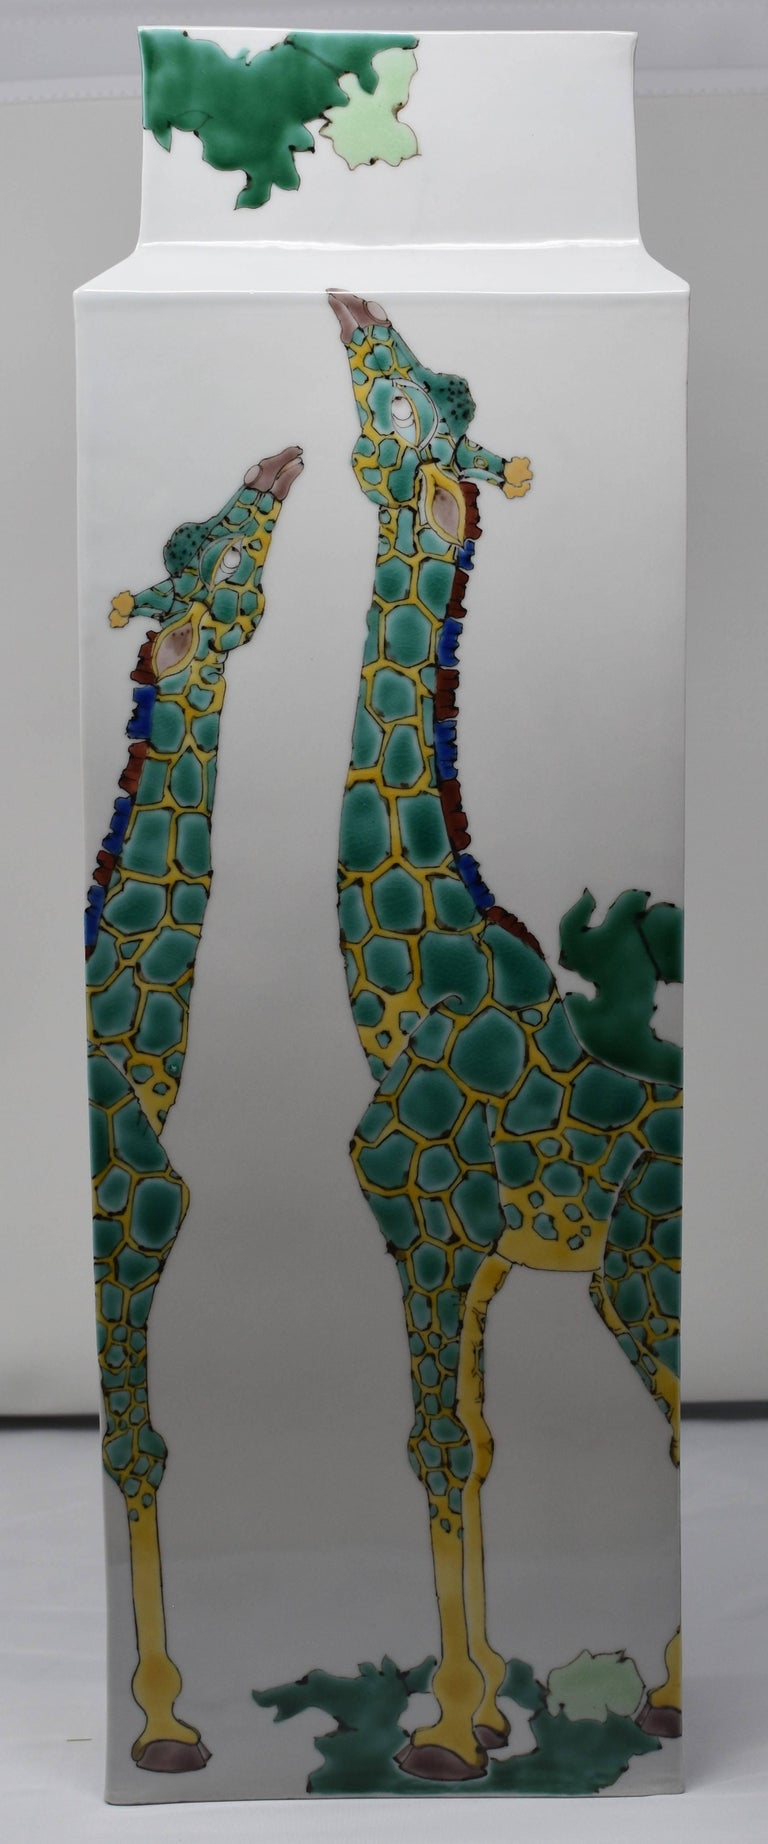 A contemporary large Japanese Kutani hand-painted porcelain vase with a unique interpretation of giraffes. This is part of a series of pieces featuring the animals of the African savannah. Depicted here are giraffes looking skyward and earthward